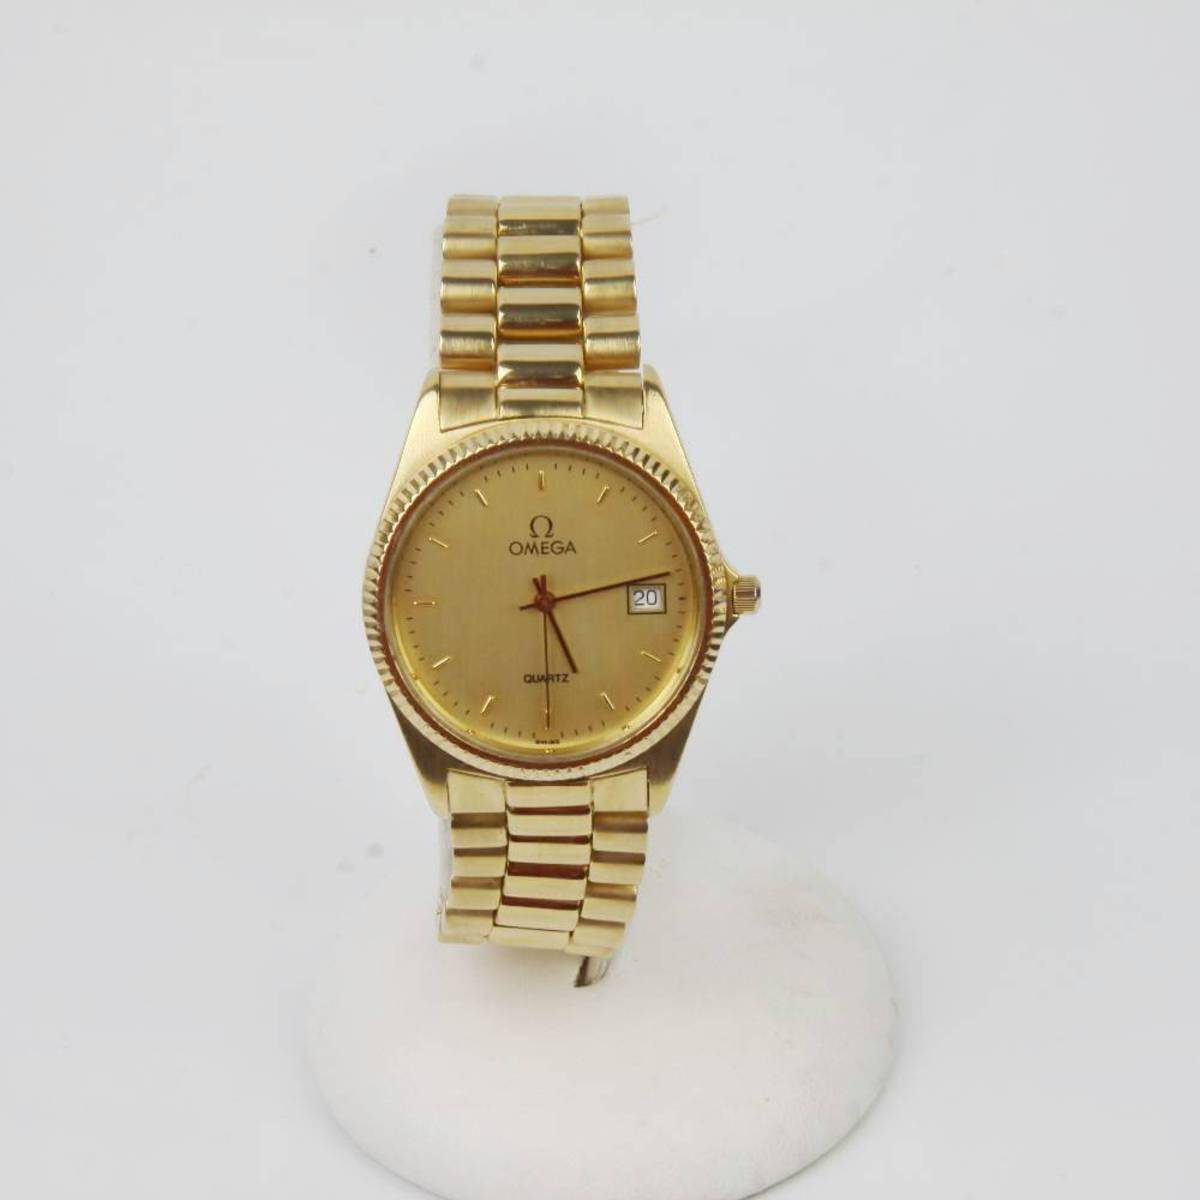 Reloj OMEGA de oro de segunda mano E272846 Tienda online de segunda